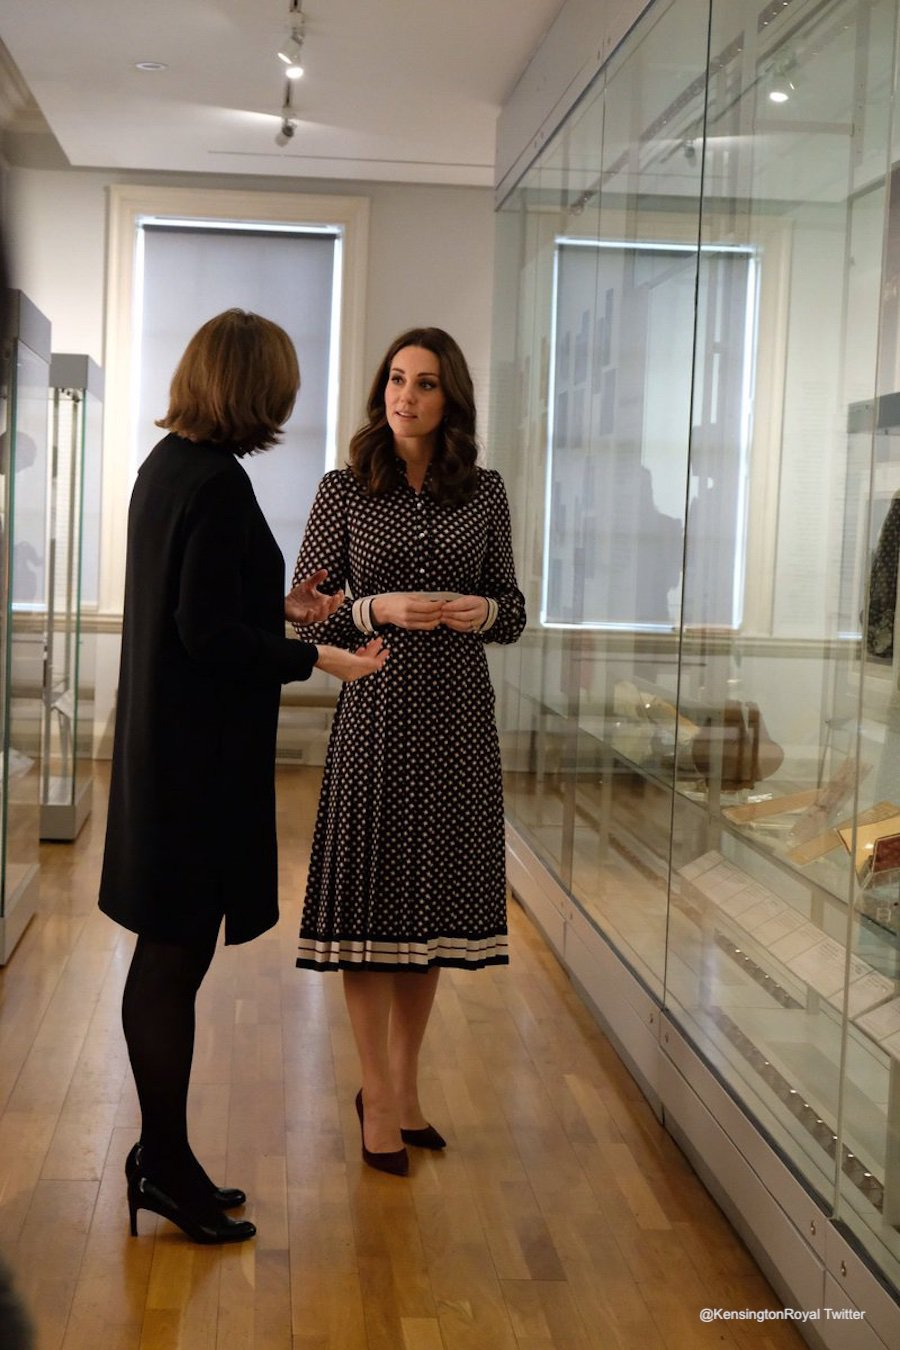 The Duchess of Cambridge (Kate Middleton) viewing exhibits at the Foundling Museum